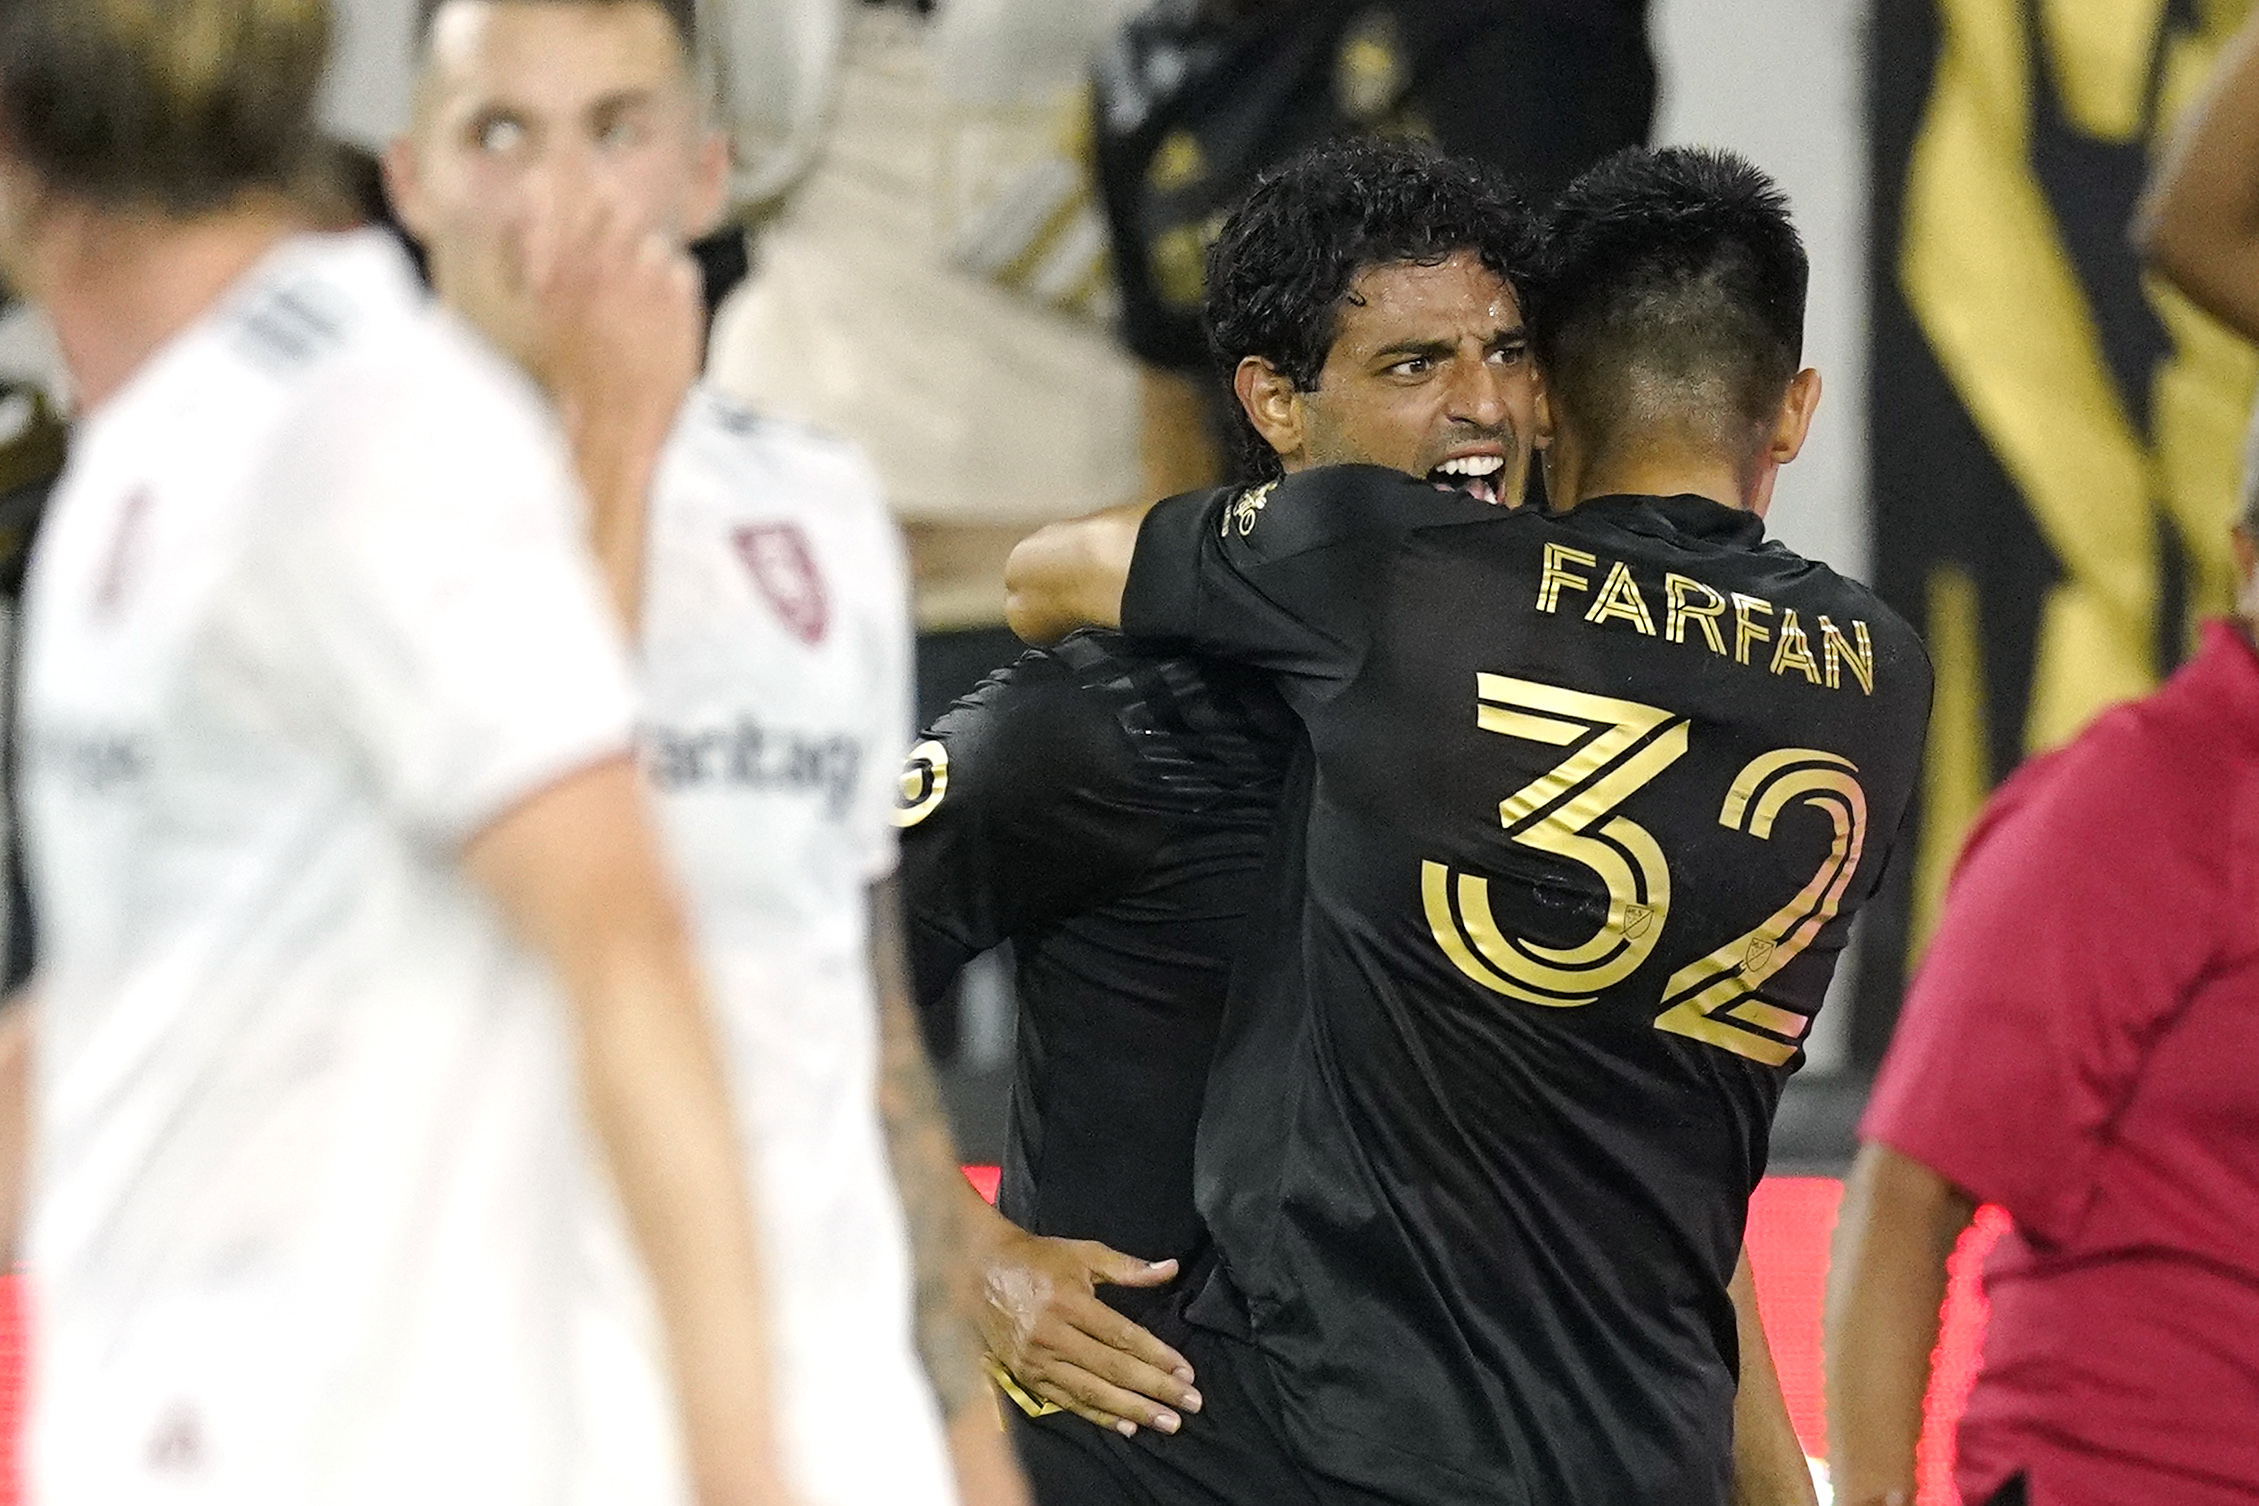 Los Angeles FC forward Carlos Vela celebrates his goal during the second half of a Major League Soccer match against Real Salt Lake.